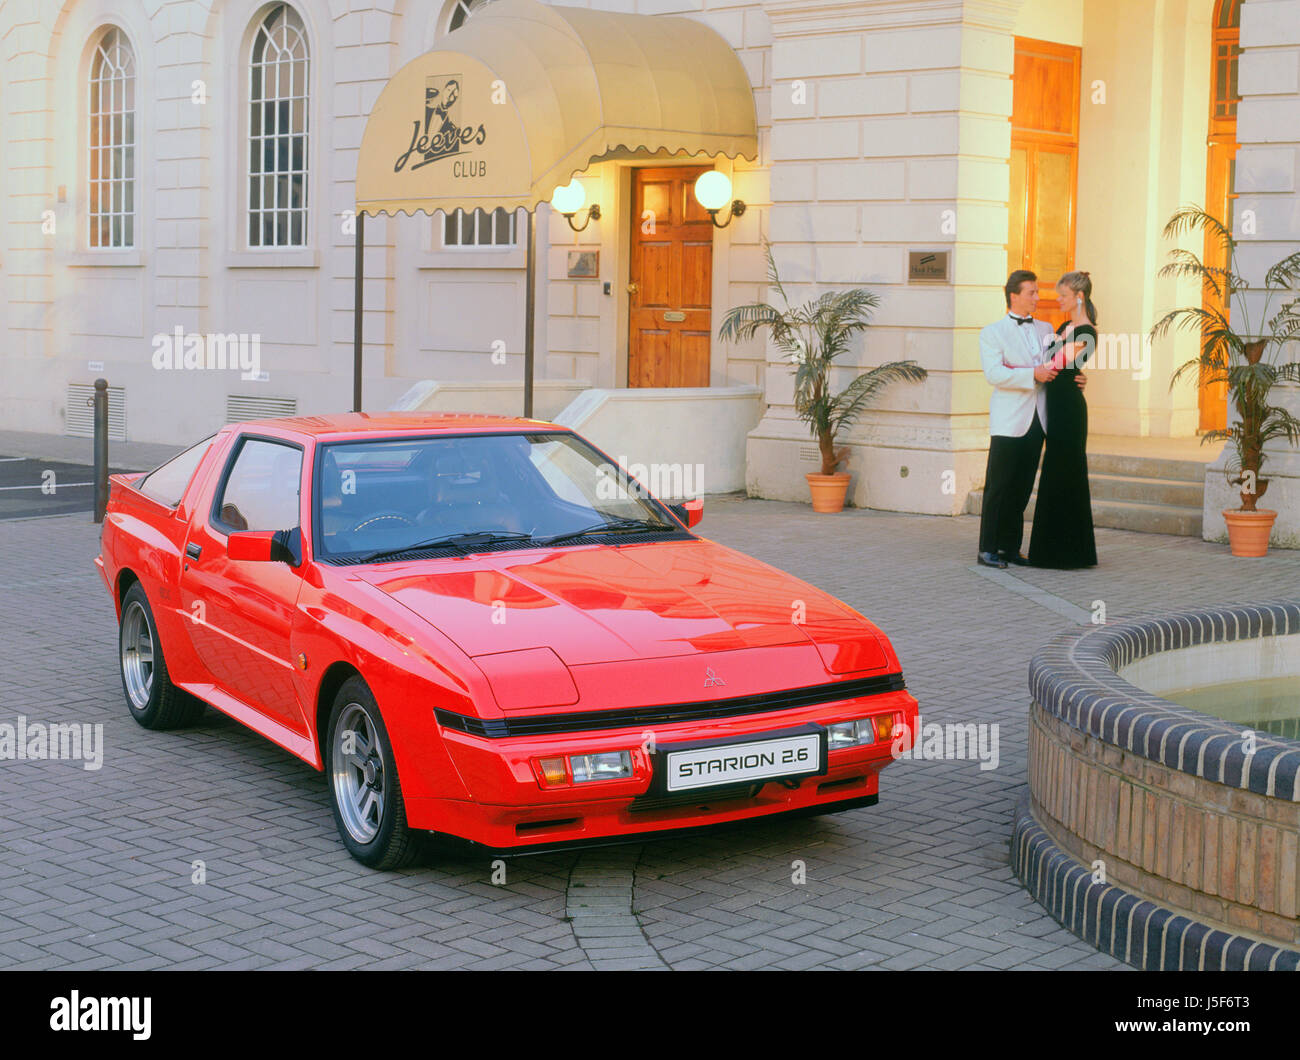 1989 Mitsubishi Starion 2.6 Photo Stock